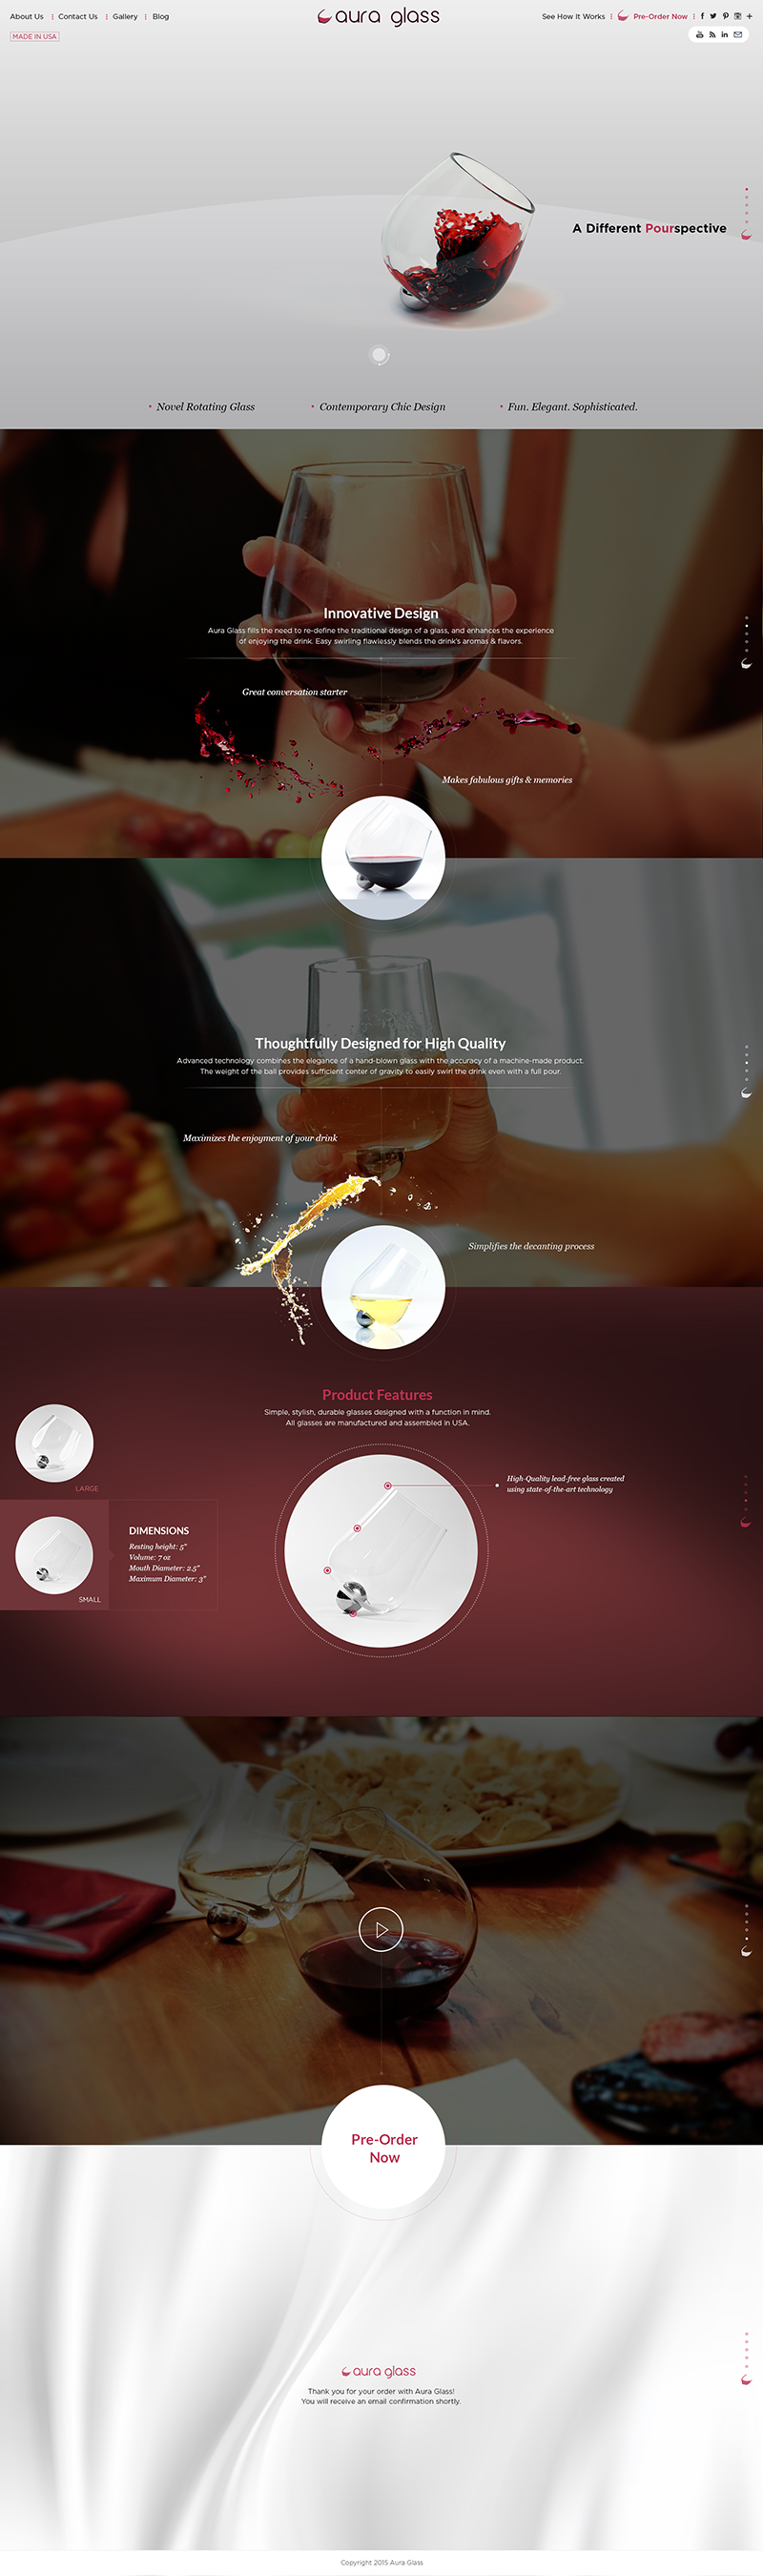 Aura glass Web Design